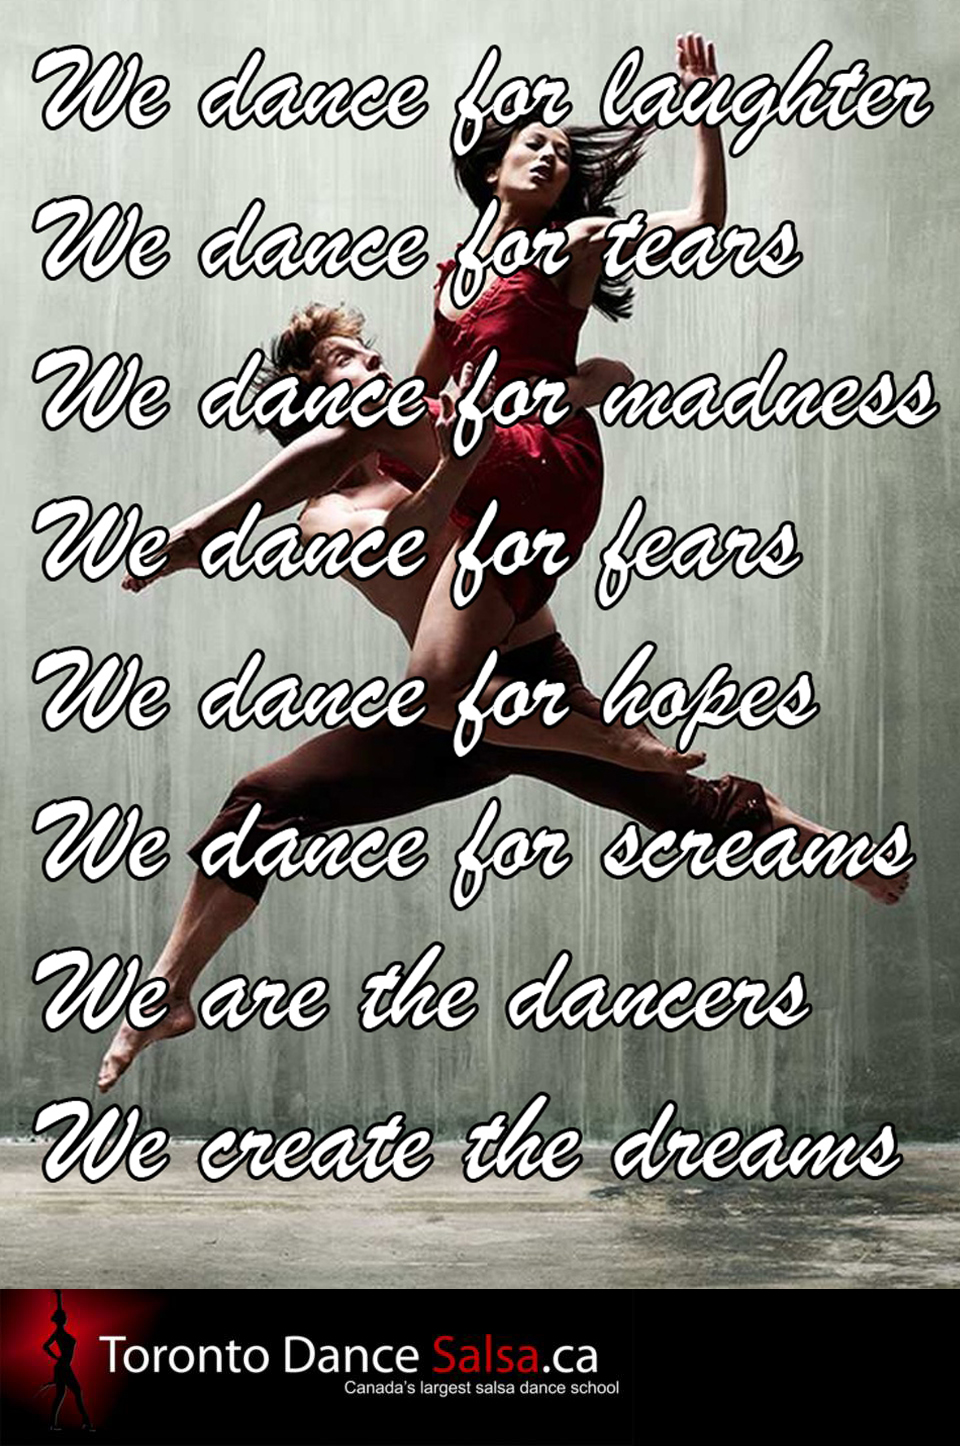 We are the dancers we create the dreams.